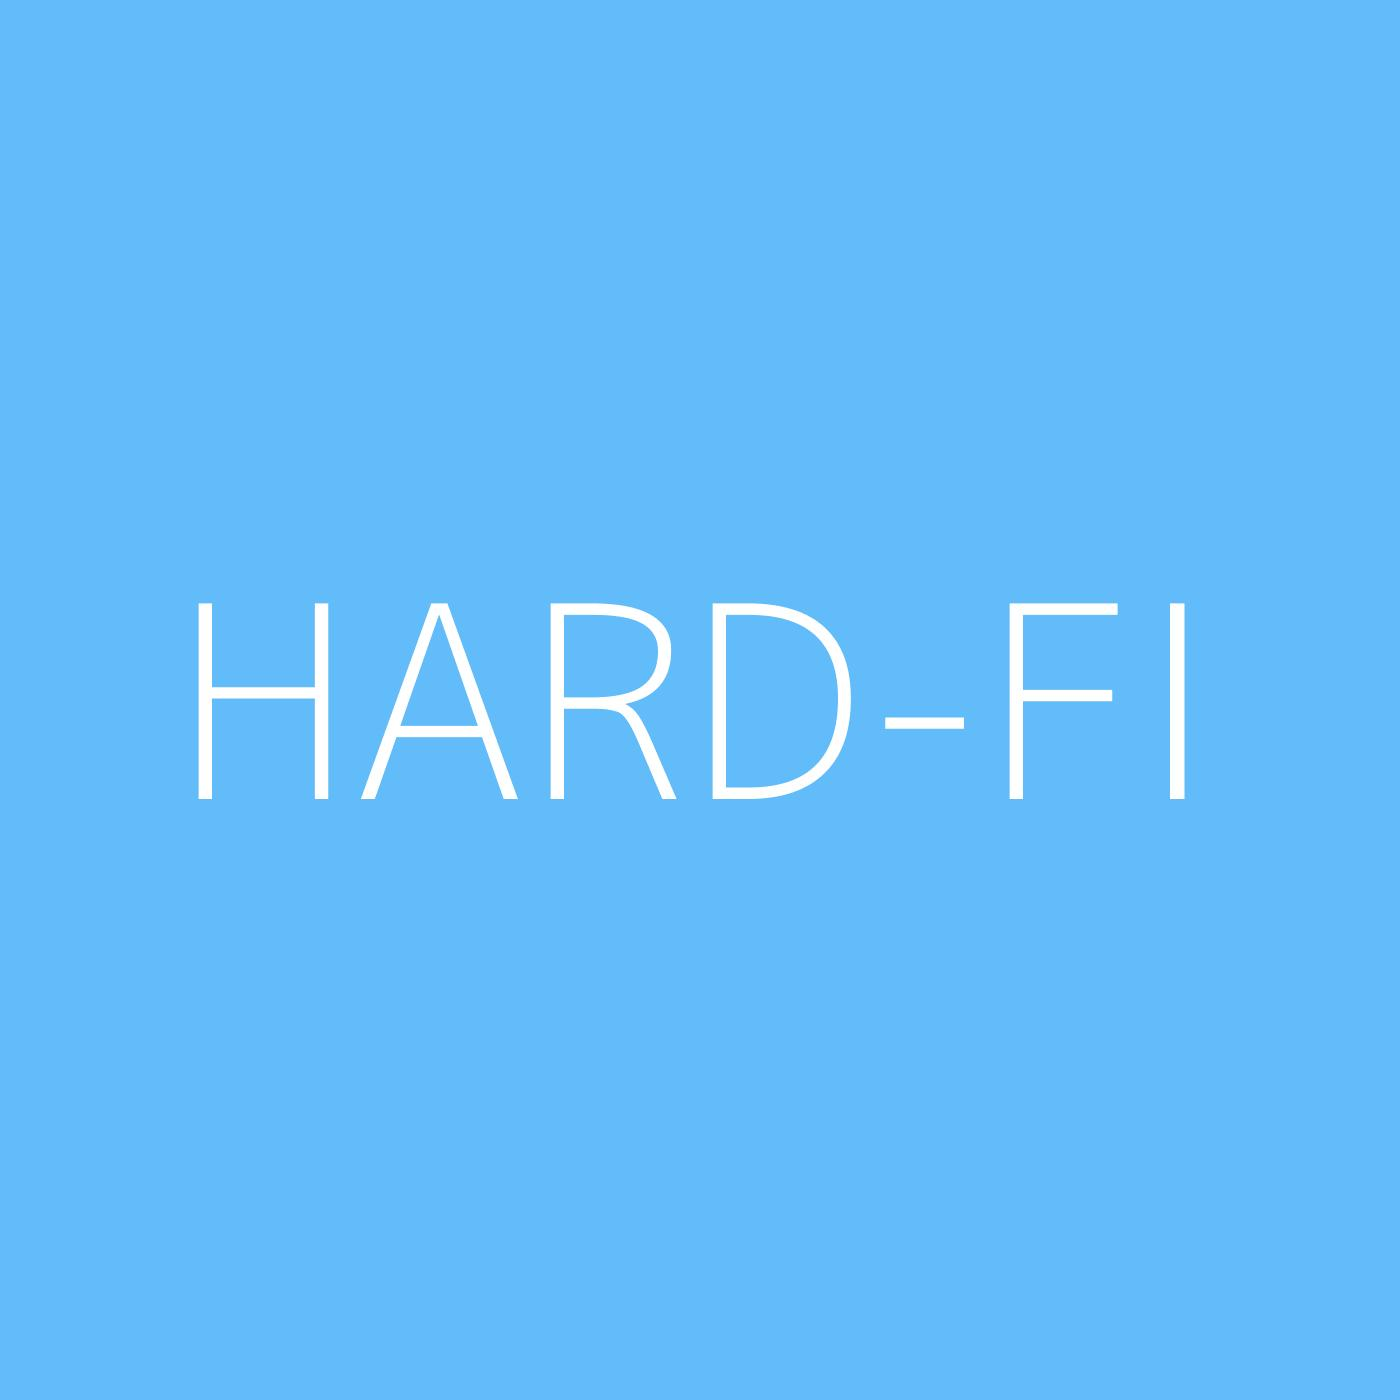 Hard-FI Playlist Artwork